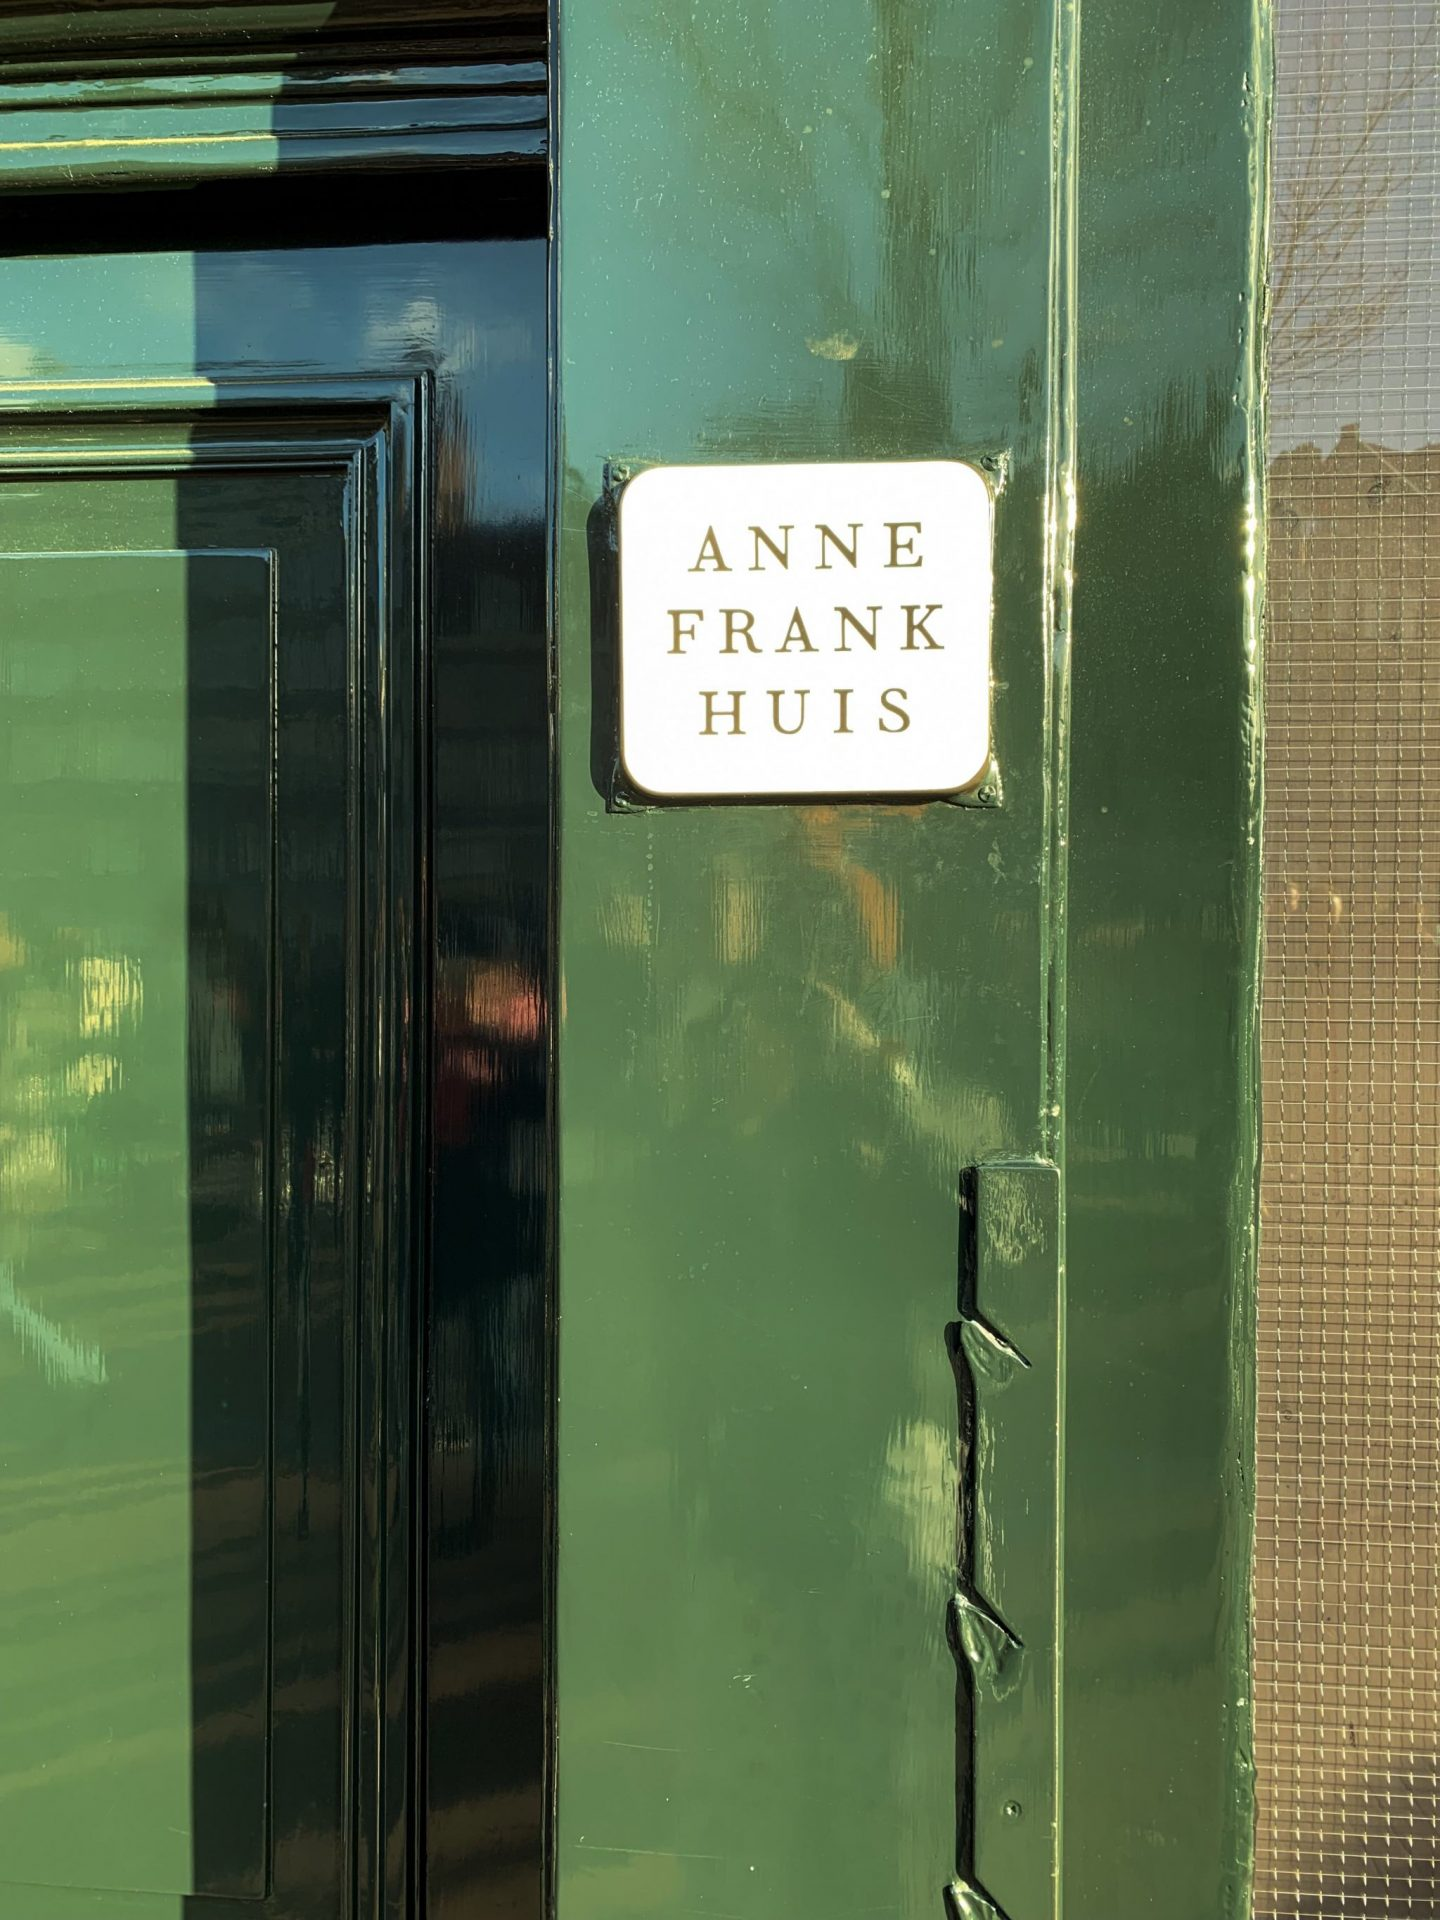 72 Hours In Amsterdam - Anne frank huis